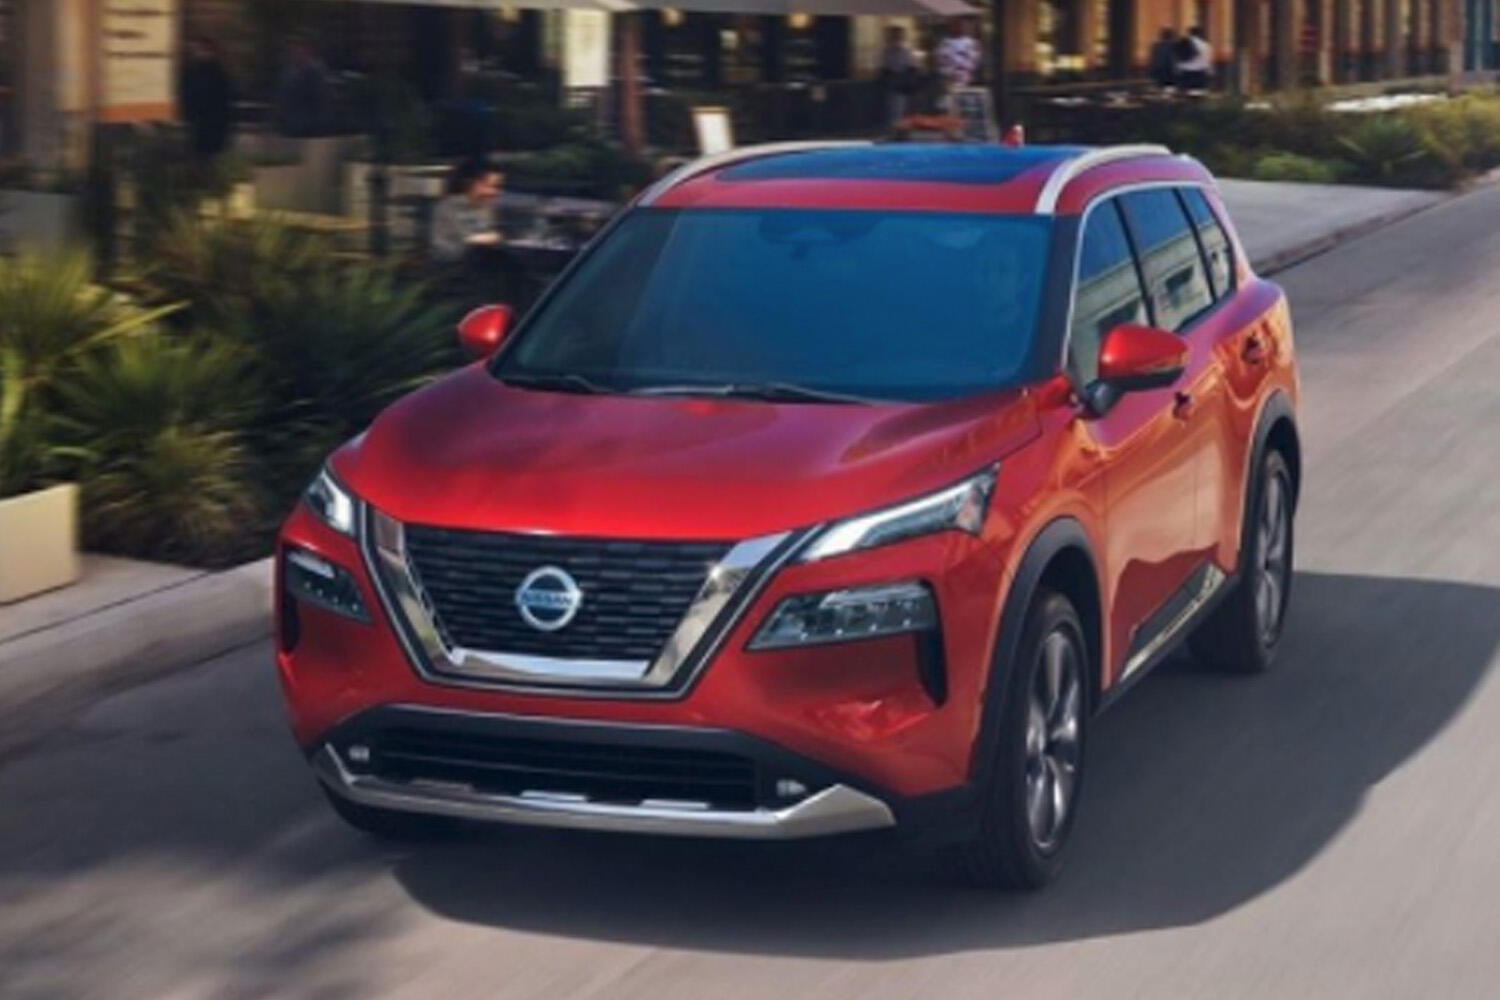 2021 Nissan Rogue leaked image